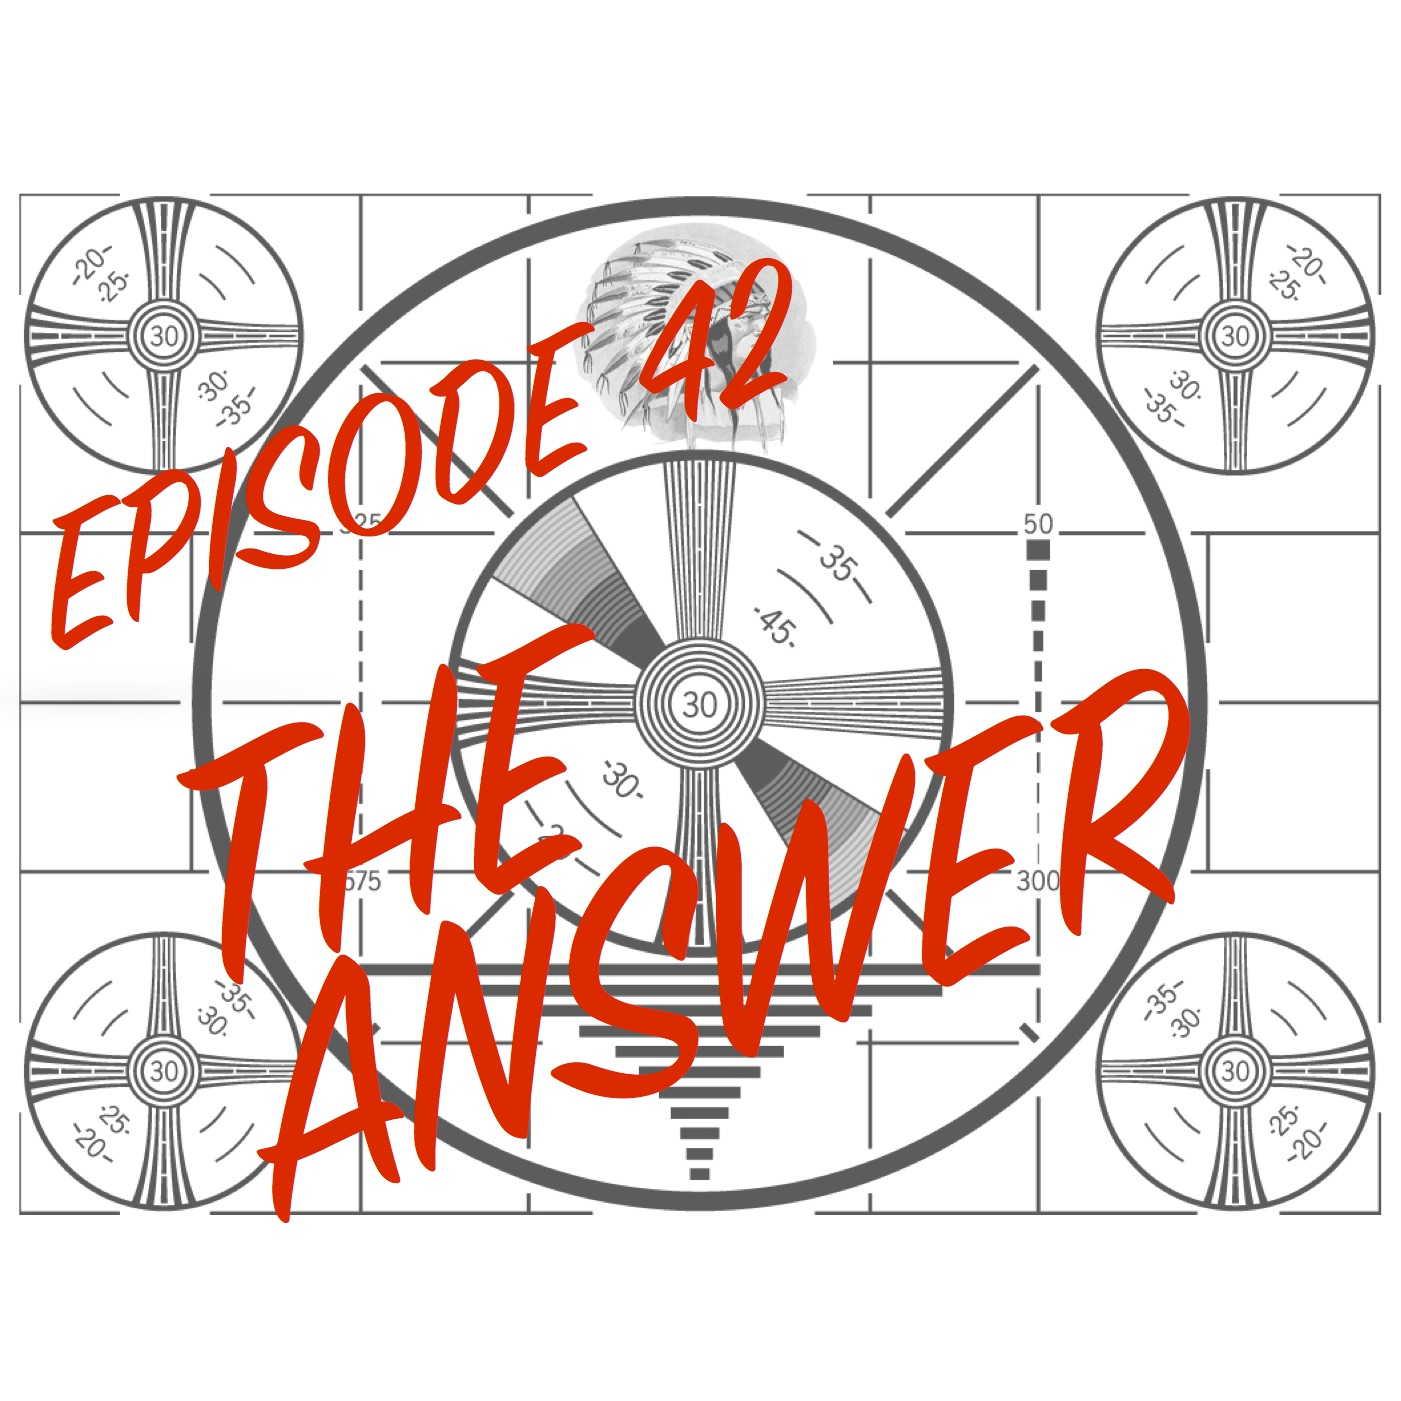 Episode 42 - The Answer